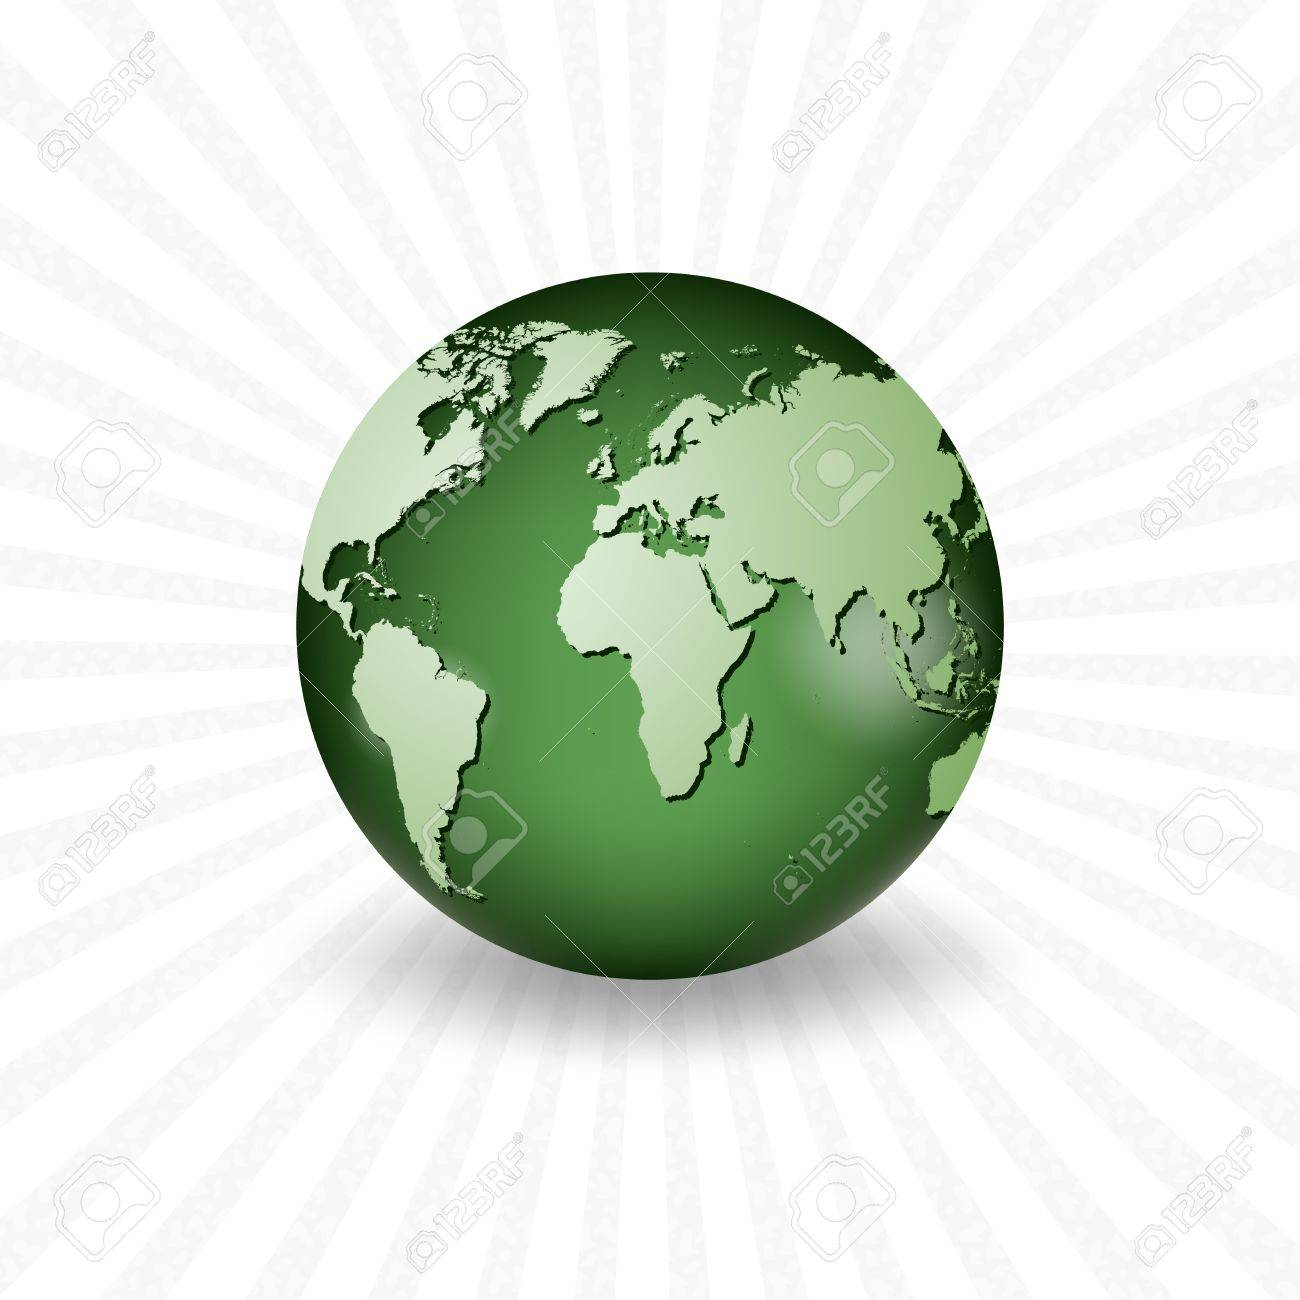 Planet earth with a realistic world map royalty free cliparts planet earth with a realistic world map stock vector 41584727 gumiabroncs Choice Image